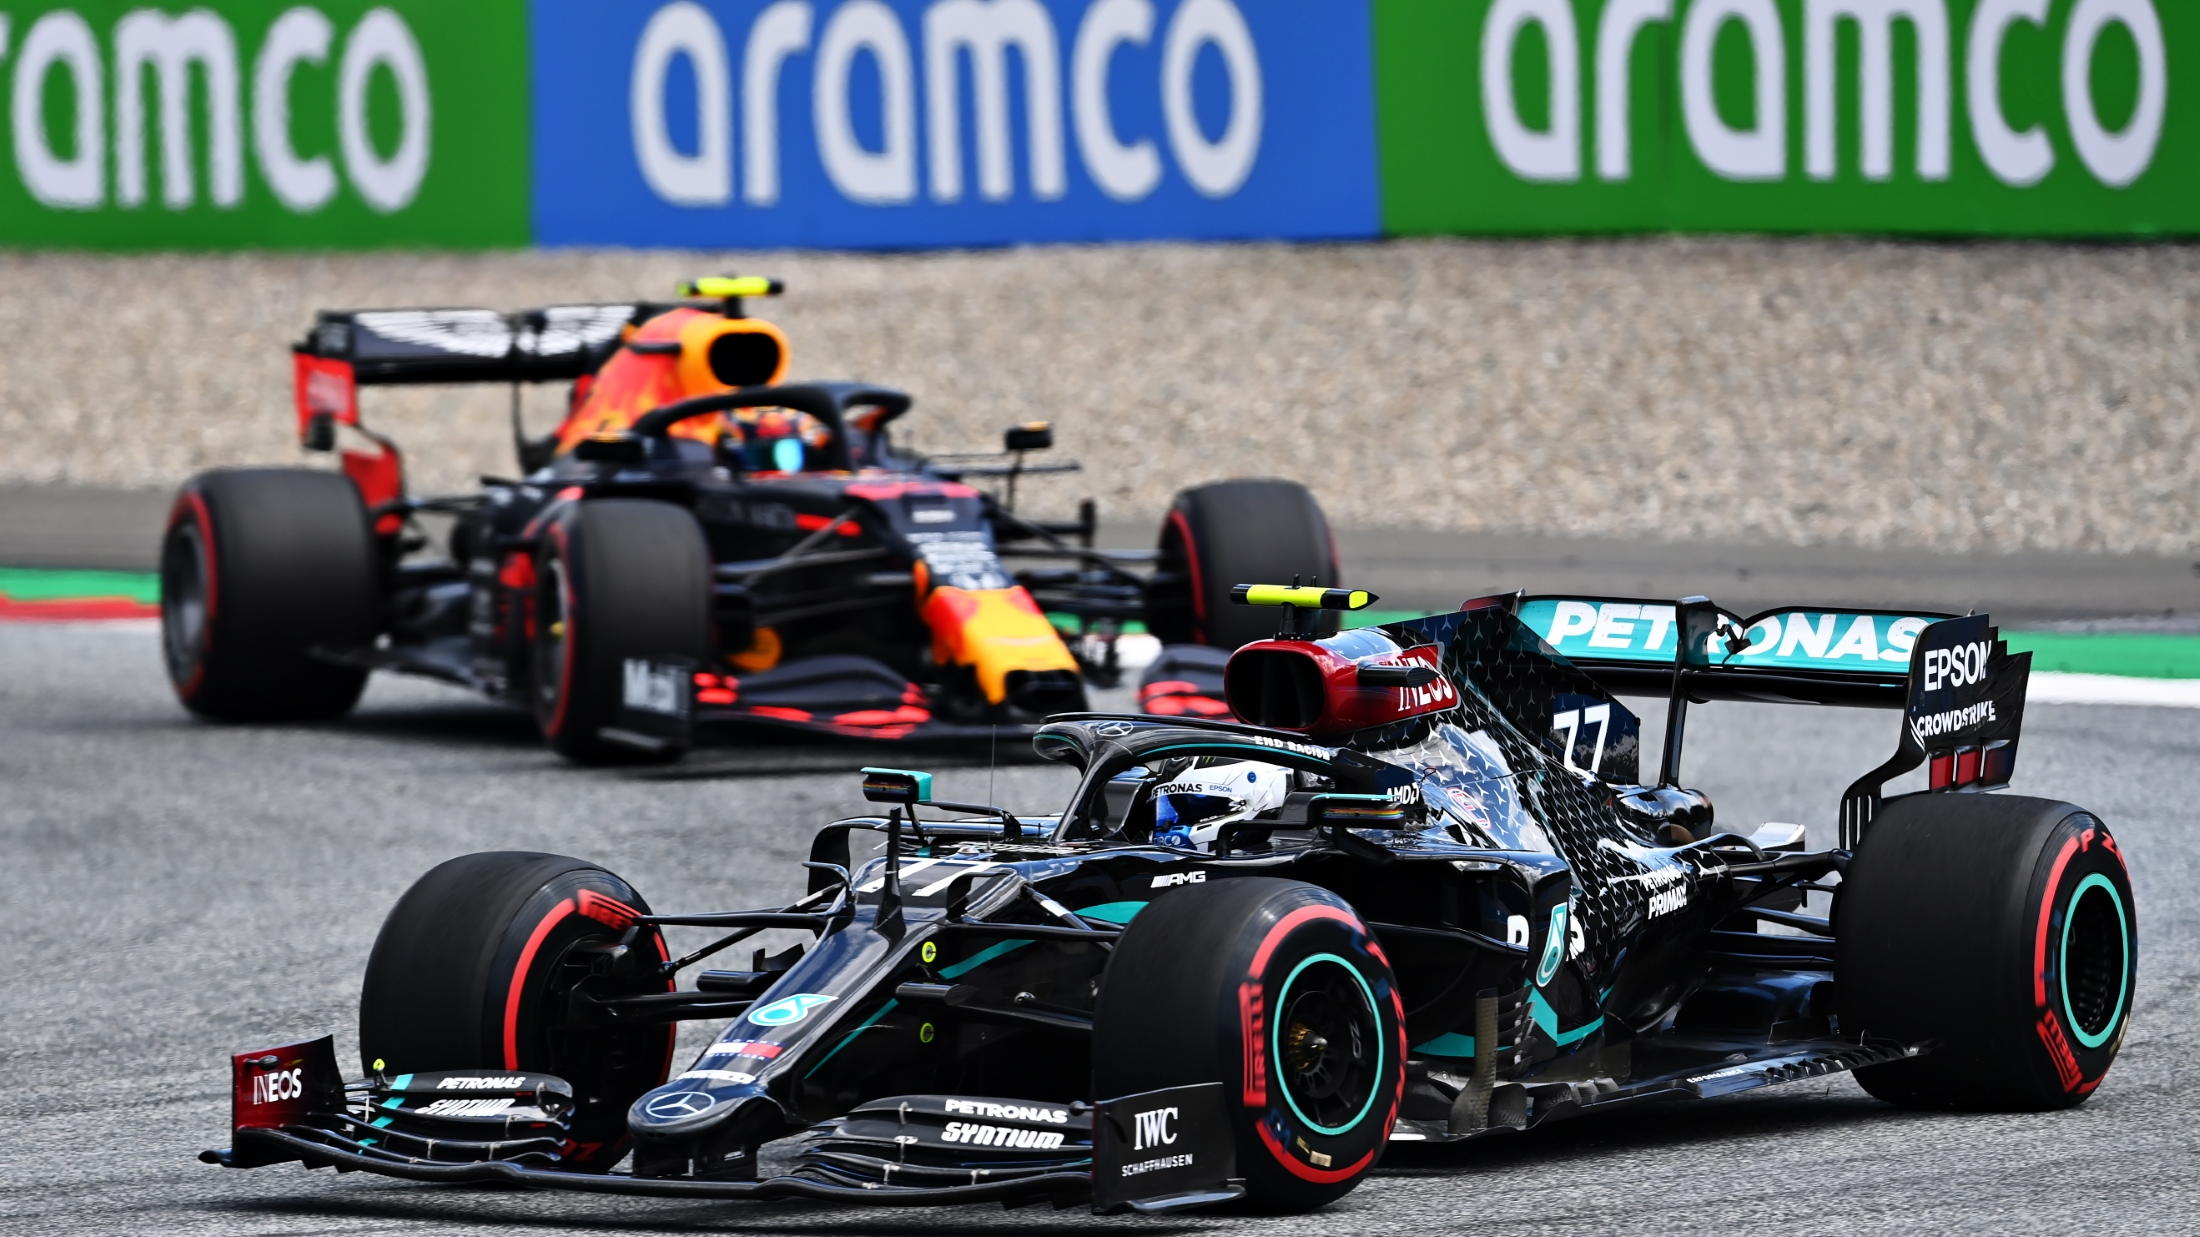 Valtteri Bottas And Alex Albon Have The Two Hardest Jobs In F1 Says Christian Horner On The F1 Nation Podcast Formula 1